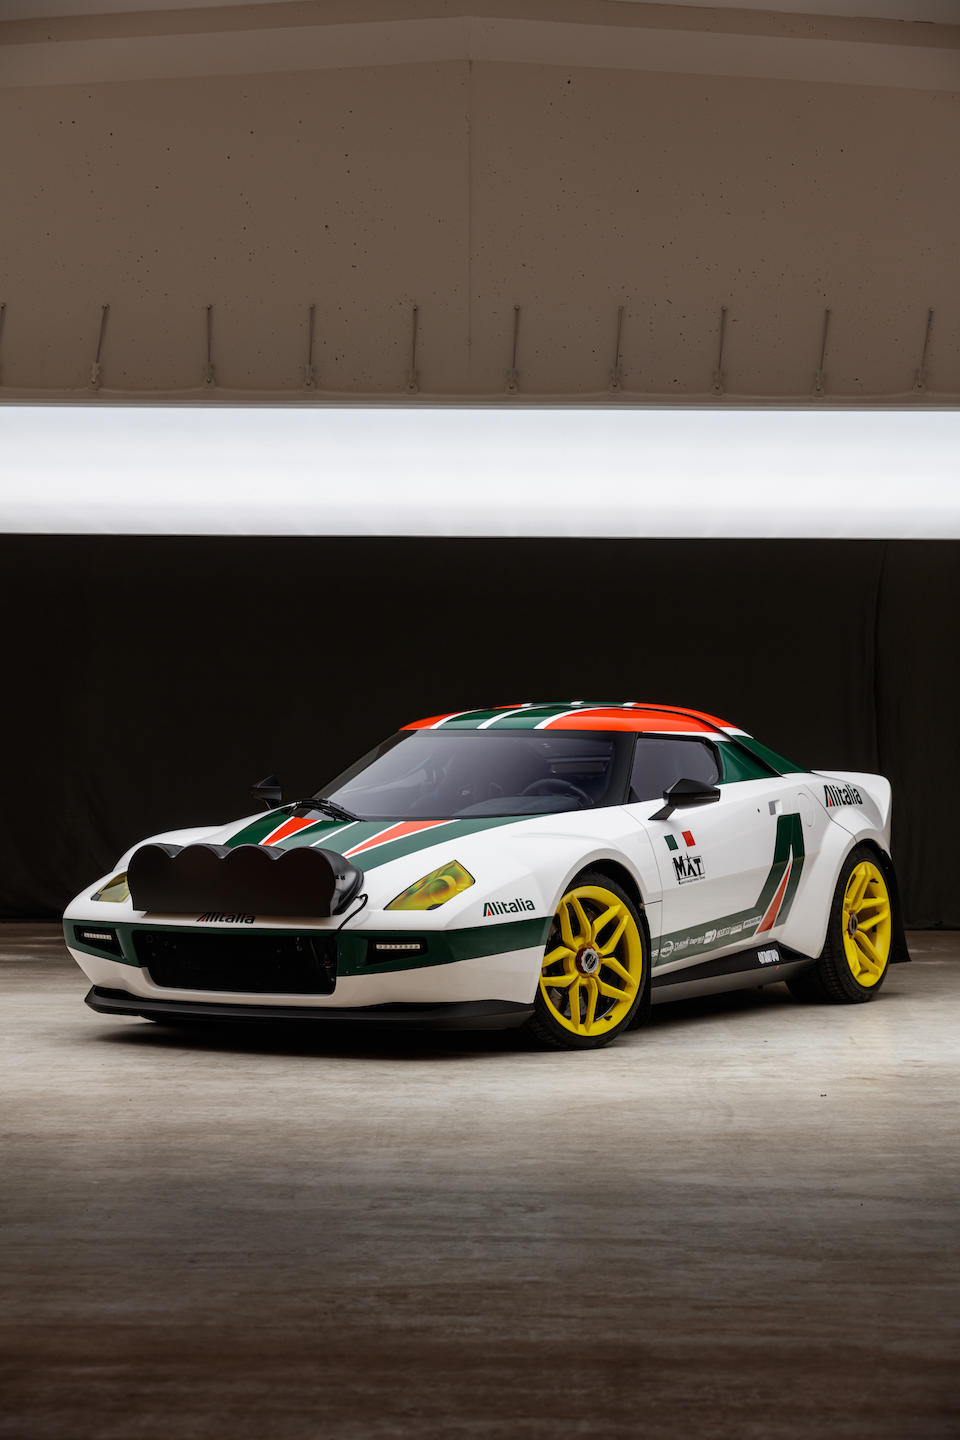 New-Stratos-auction-19